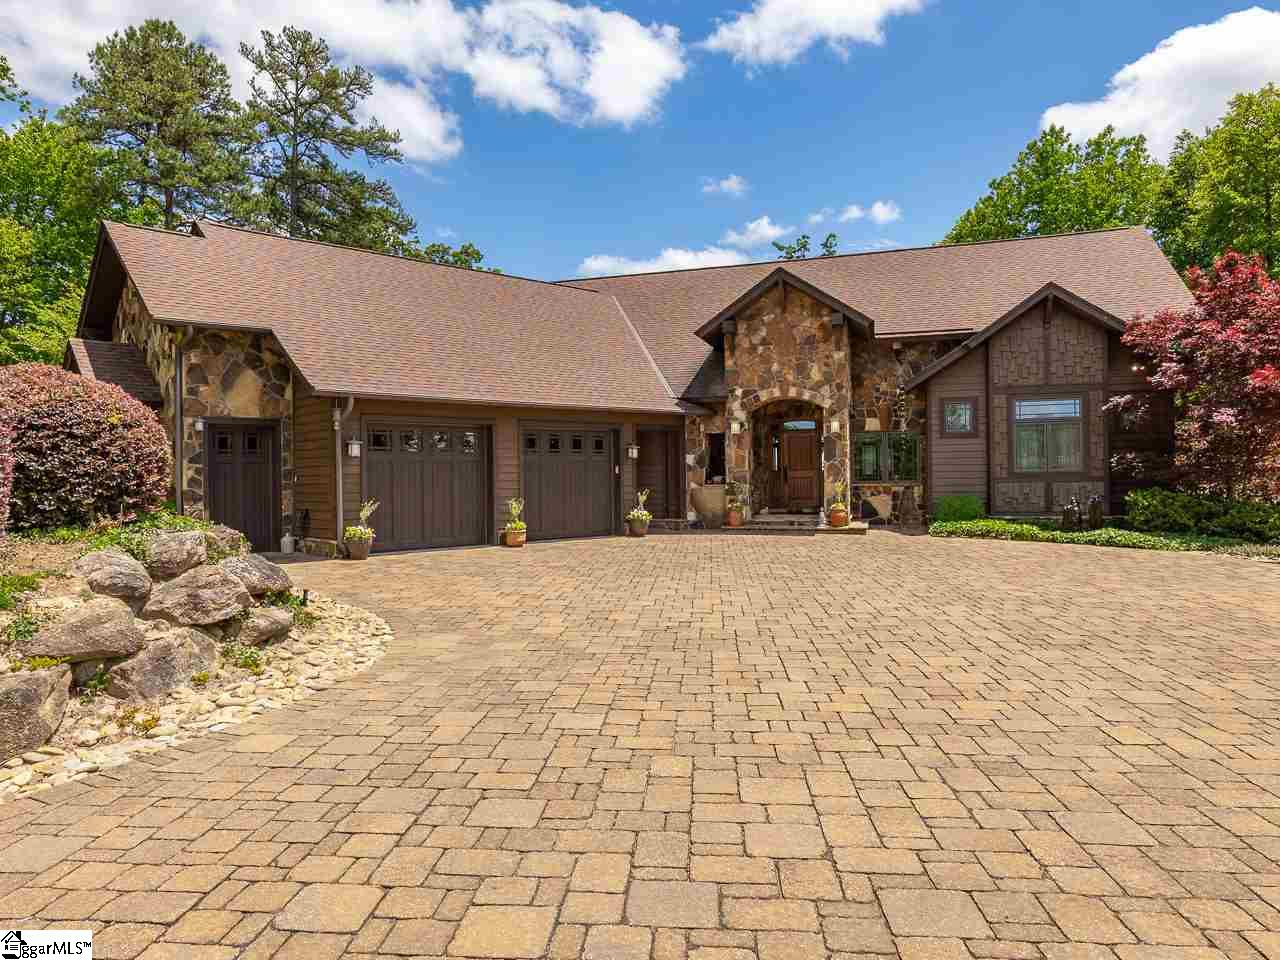 """This Mountain Retreat is glamour, style, and true Mission architecture features in one perfectly composed home!  No detail was overlooked when this home was built.  The layout allows for entertaining, with large groups, as well as smaller groups of people, being in the home at one time for a gathering!  This is possible due to the flow from the Great Lodge Room to the Dining and Kitchen to a screened in porch or decks.  Continual flow in and outdoors for optimum entertaining.  Your guests will love that feature because they get to experience nature, mountain views and the sound of a babbling brook with the waterfall feature in the landscape below the deck.  Spectacular luxury finishes showcased like rough hewn beams wrapped in wrought iron strappings , custom chandeliers of wood and rod iron, stained glass transoms above doors, Solid core oak doors,and hardwoods throughout. Custom quarter sewn oak, Mission style cabinets, throughout the home.  The kitchen has Wolf, Subzero and Miele appliances including double ovens, trash compactor, ice maker, and wine rack.  The Master suite is on the main level along with his and her office spaces. Two other bedrooms with full baths are on the lower level along with living room with fireplace.  All walk out to a covered patio, hammock, water feature and nature itself. Be sure to take the virtual tour so you can walk through the home as if you were there.  Everyday you can come home to your very own mountain retreat!  Each day you are greeted with breath taking sunrises and mountain views.  This home has a two car garage and a third golf cart garage. This home also sits on top of the 2.16 acres giving it the privacy and seclusion while being minutes from the front gate of this amazing gated community.  Video is also available for this property.  Every detail will capture your attention in this home and the layout will impress you for flow, function and livability. The """"prize"""" with the home is the unbelievable amenities, including """